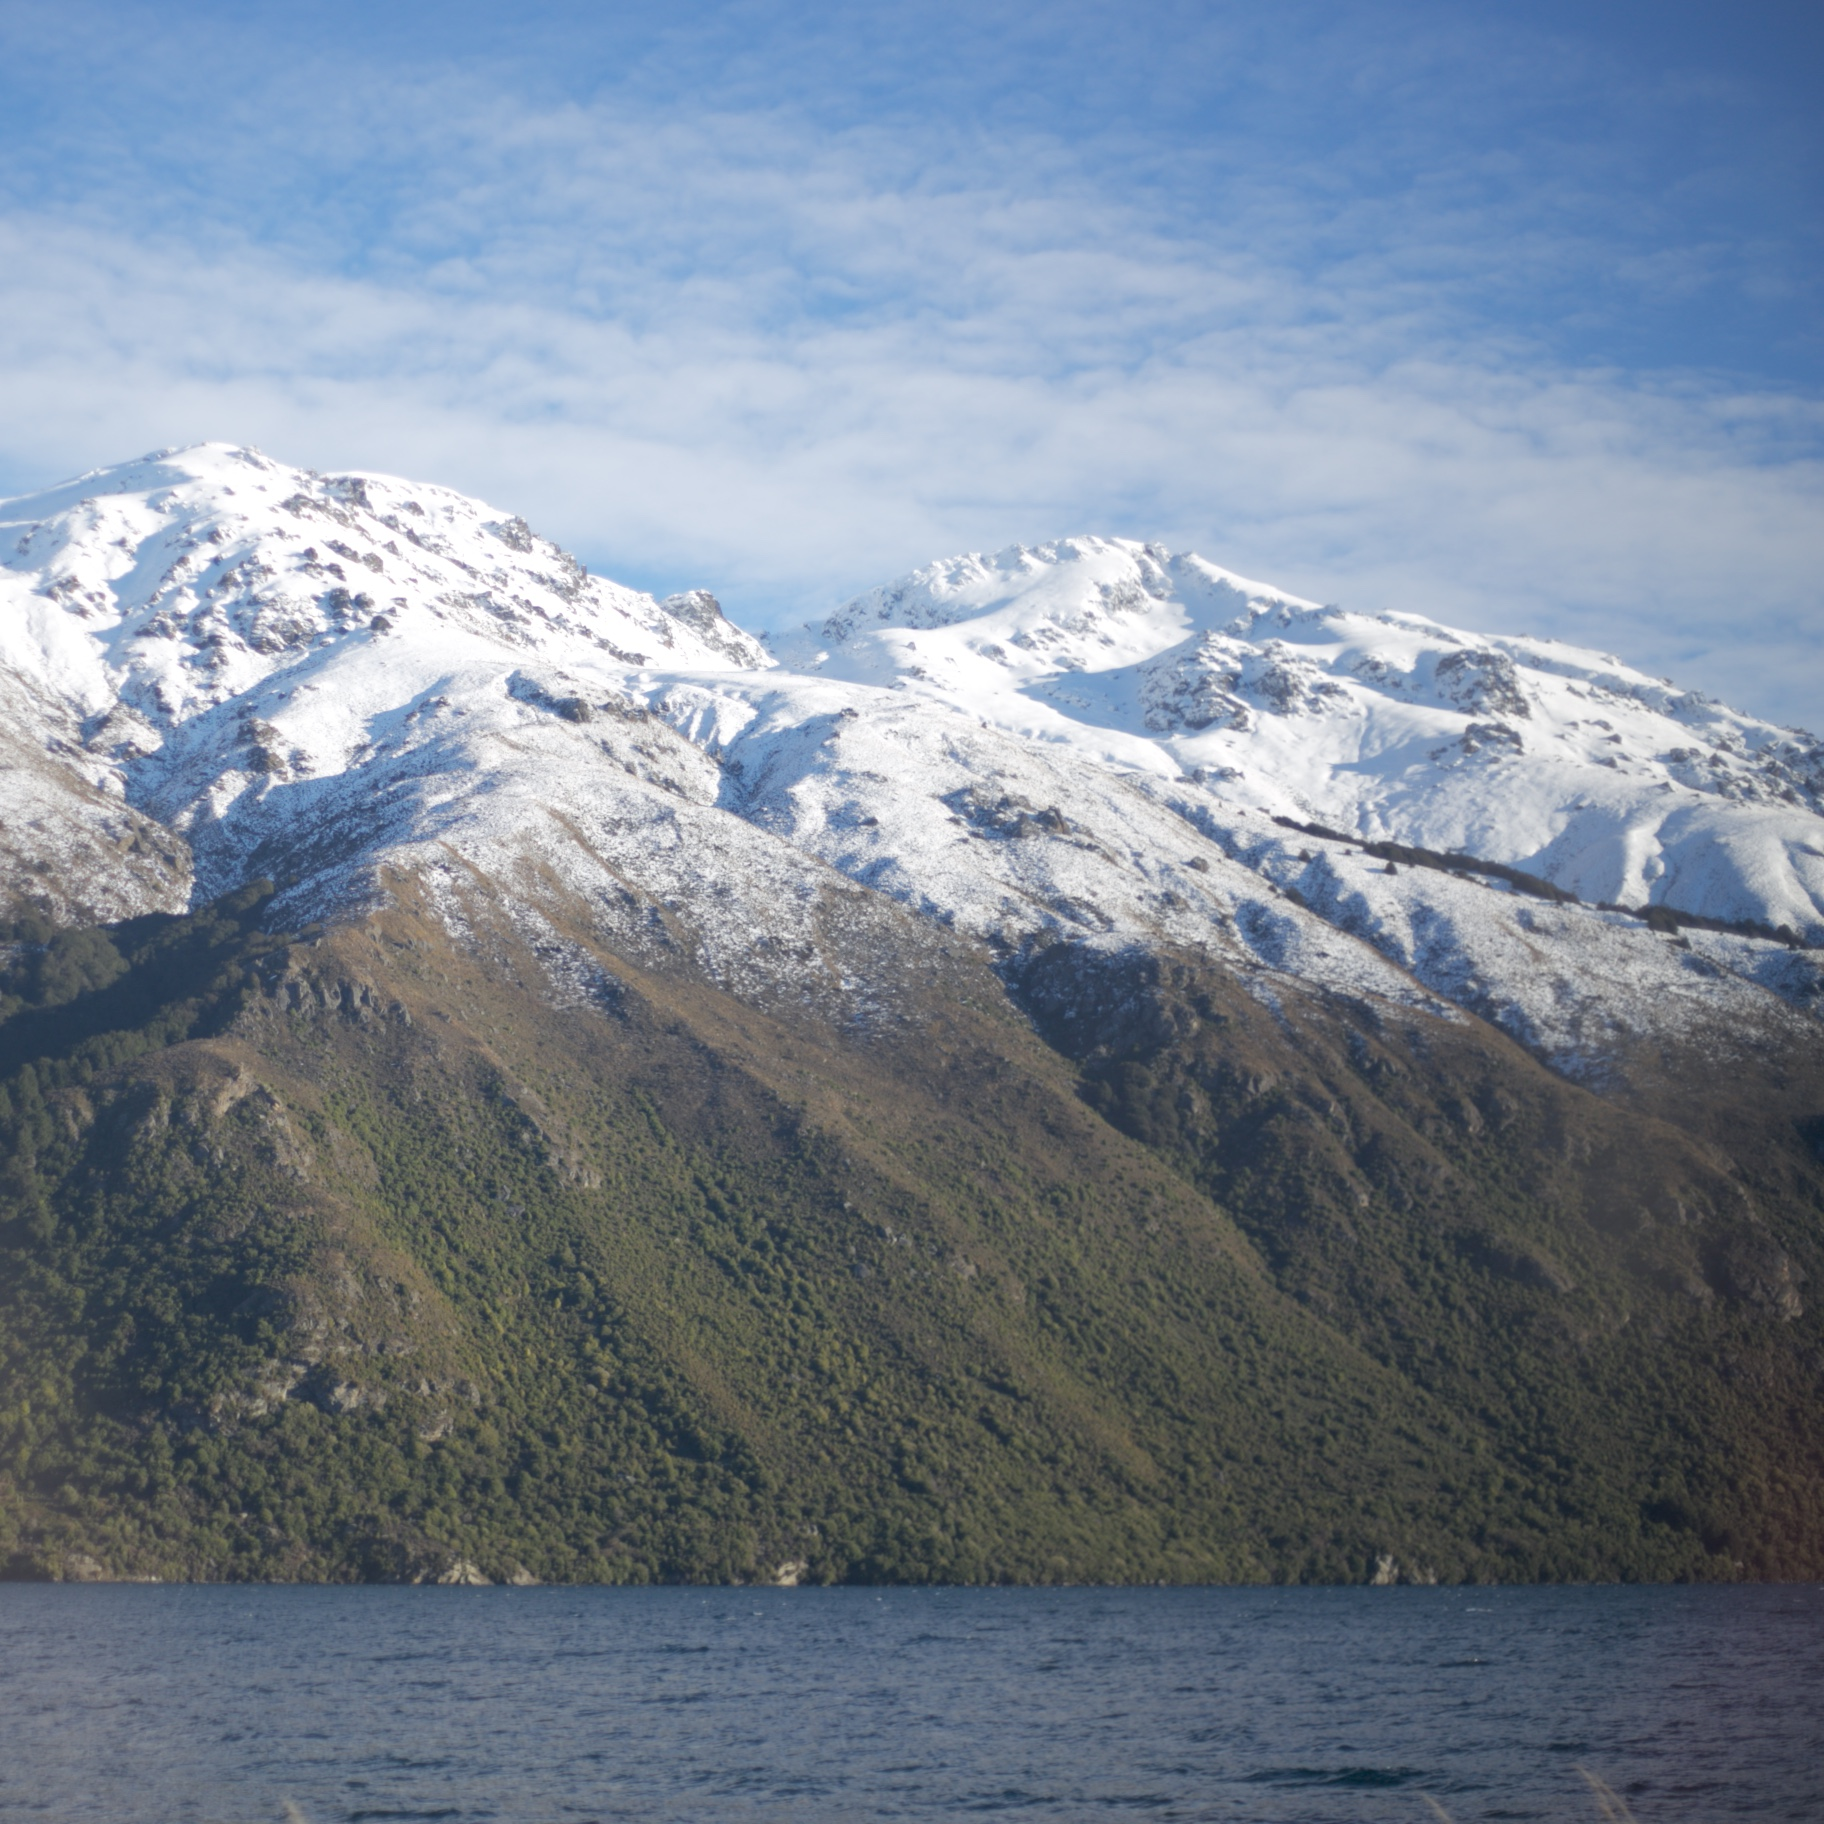 NZ snowy mountains and blue waters.